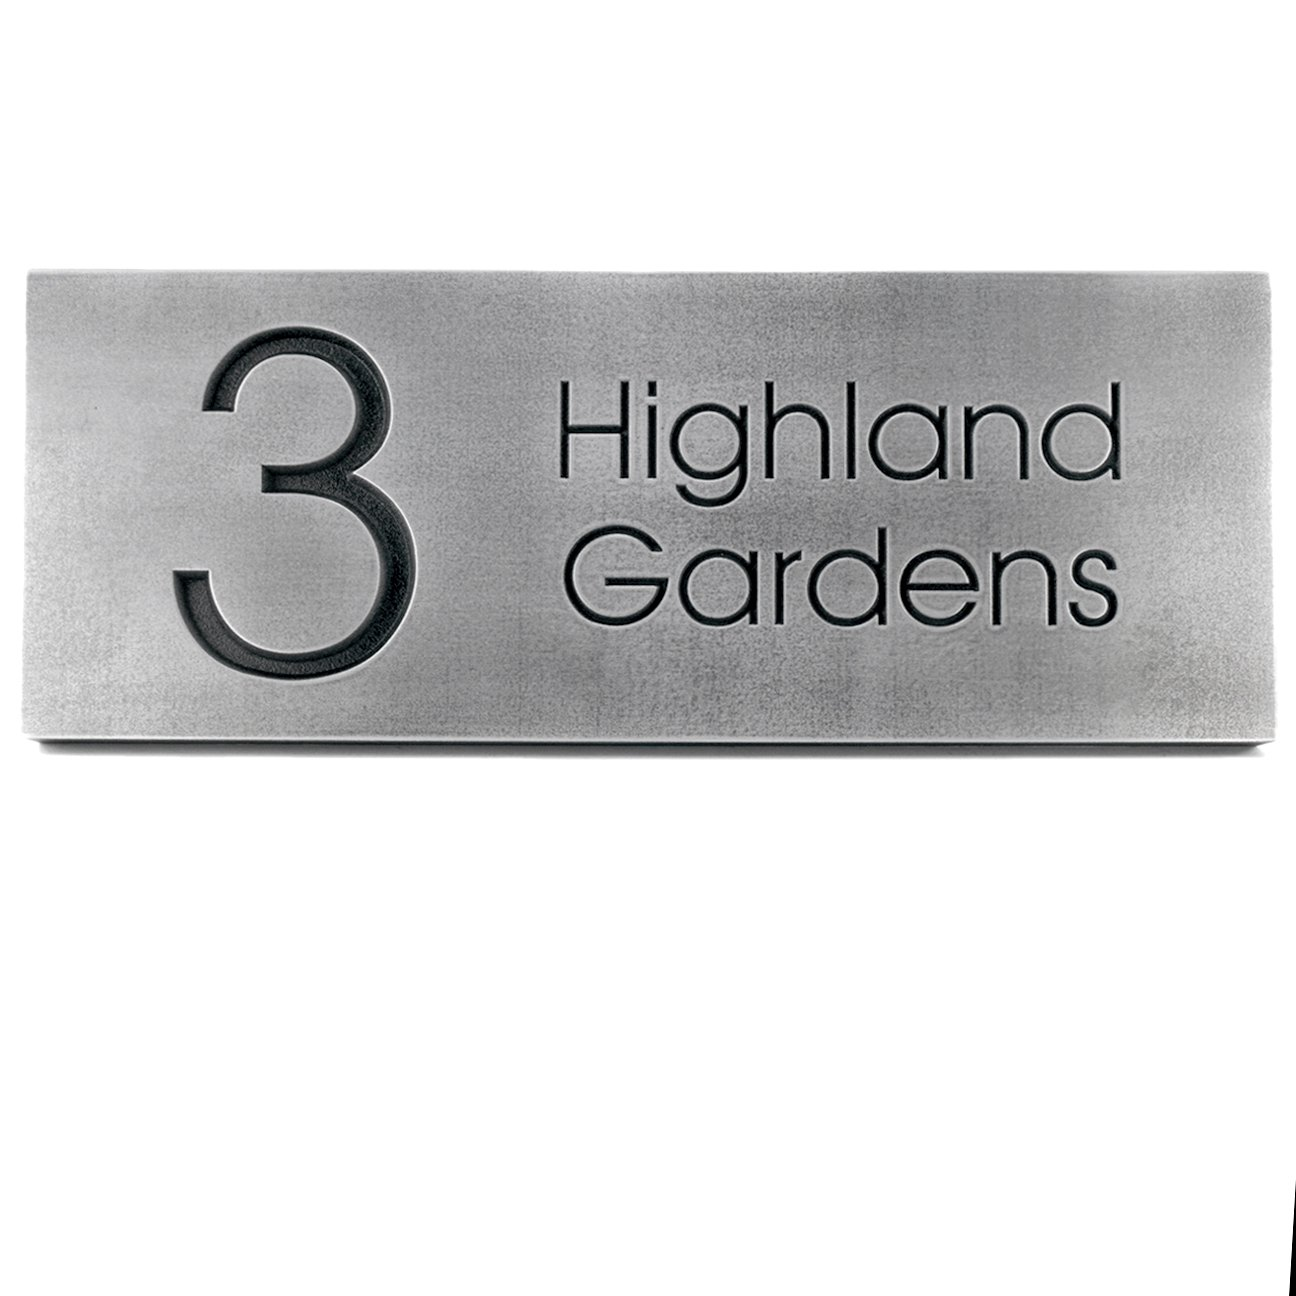 Modern Advantage Handcrafted Street Sign 20x8 - Recessed Pewter Metal Coated Plaque